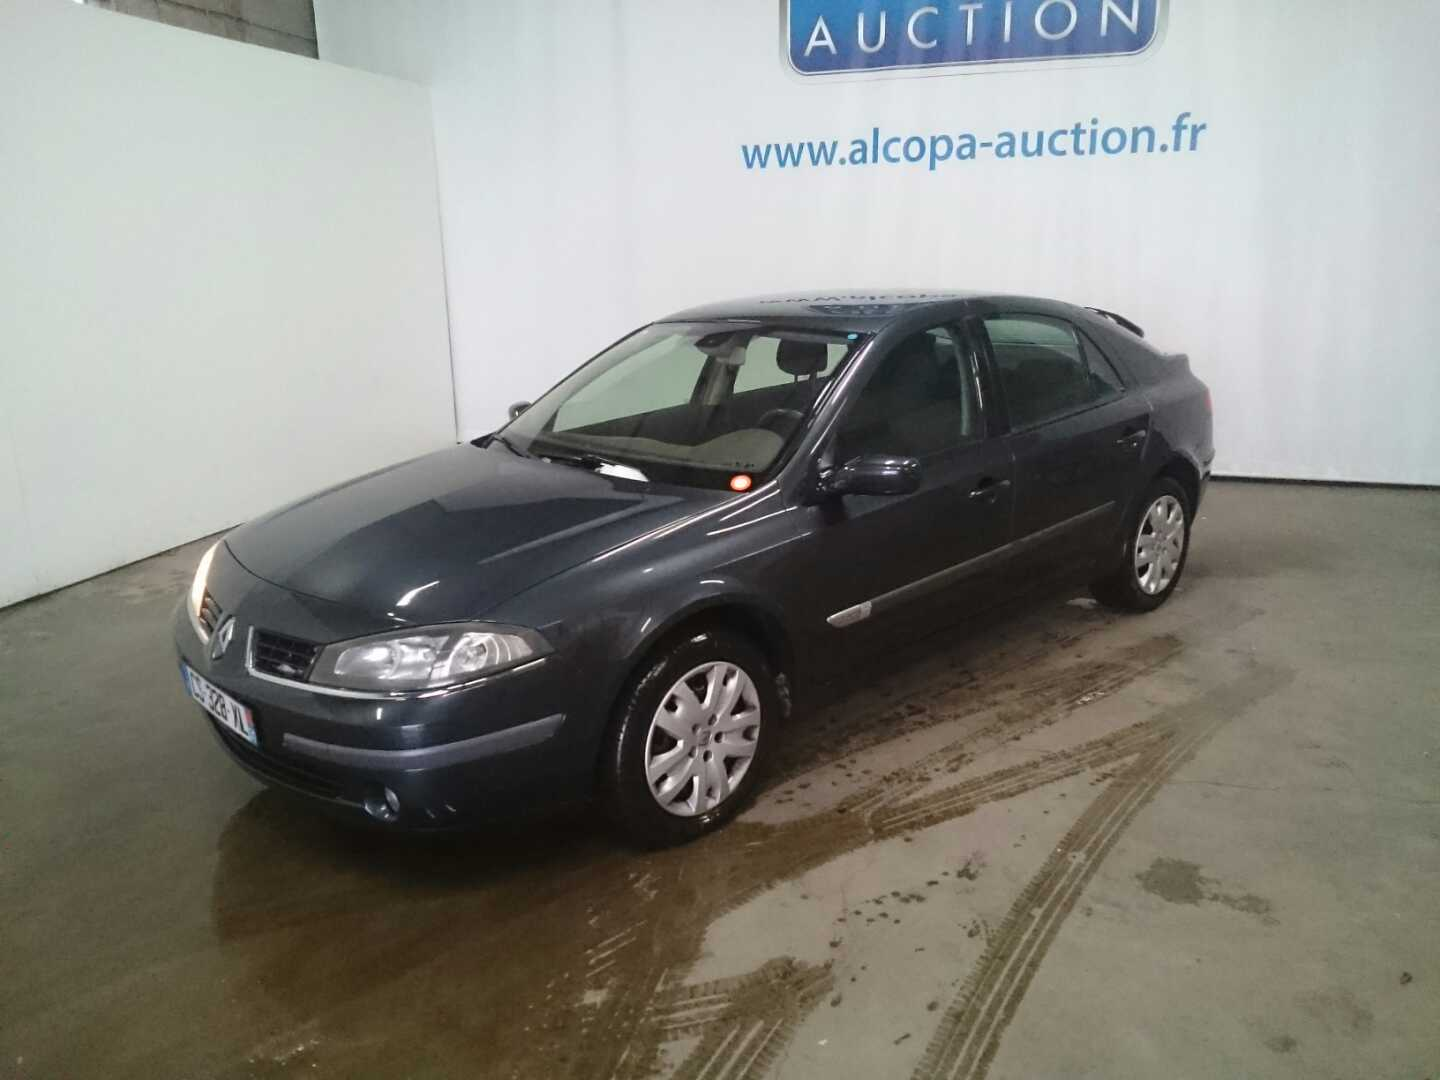 renault laguna 02 2005 09 2007 laguna 1 9 dci 110 fap expression alcopa auction. Black Bedroom Furniture Sets. Home Design Ideas